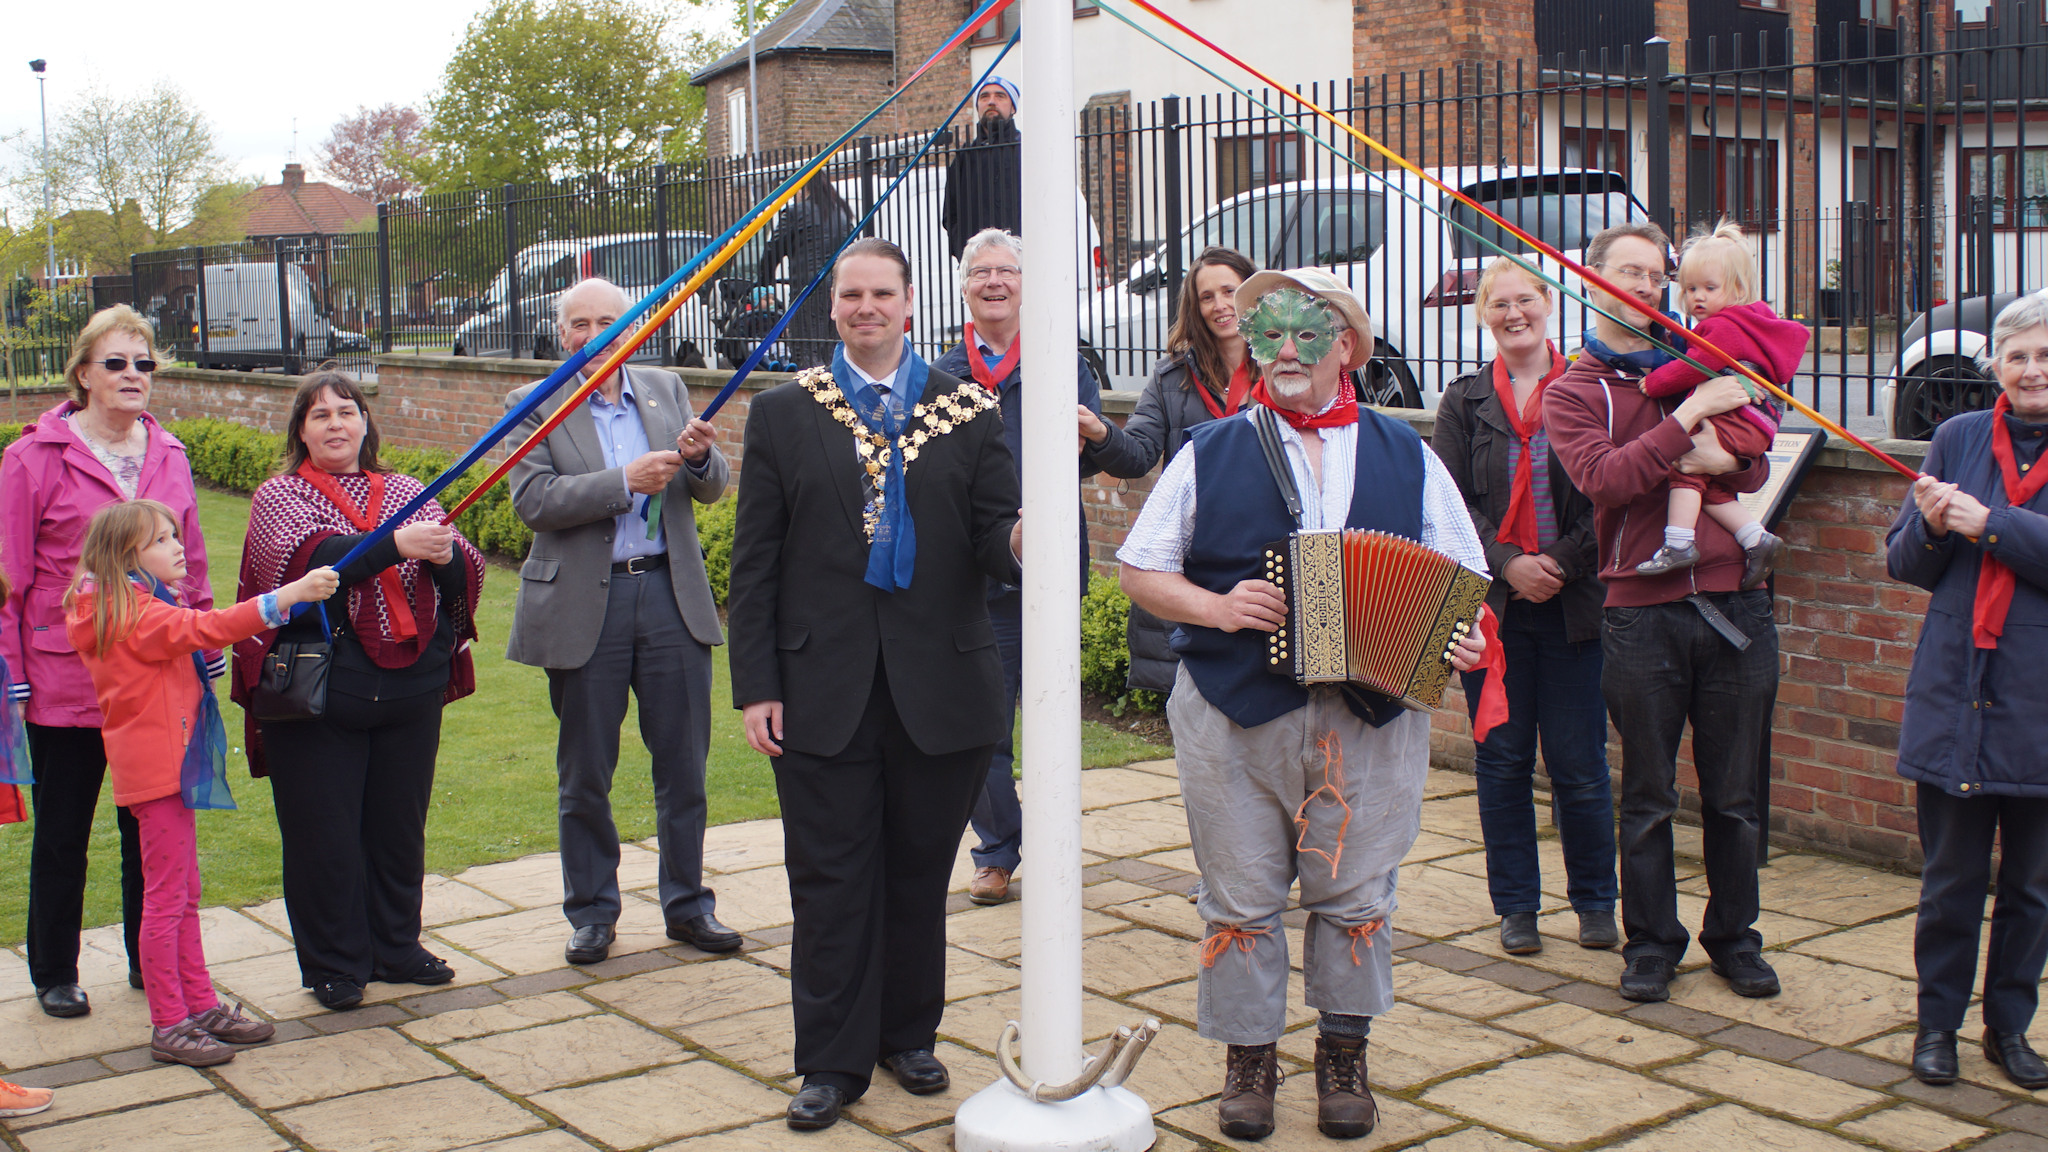 Round the pole -- Wisbech mayor Councillor Garry Tibbs and green man and accordionist Keith Aplin join revellers to mark the start of May